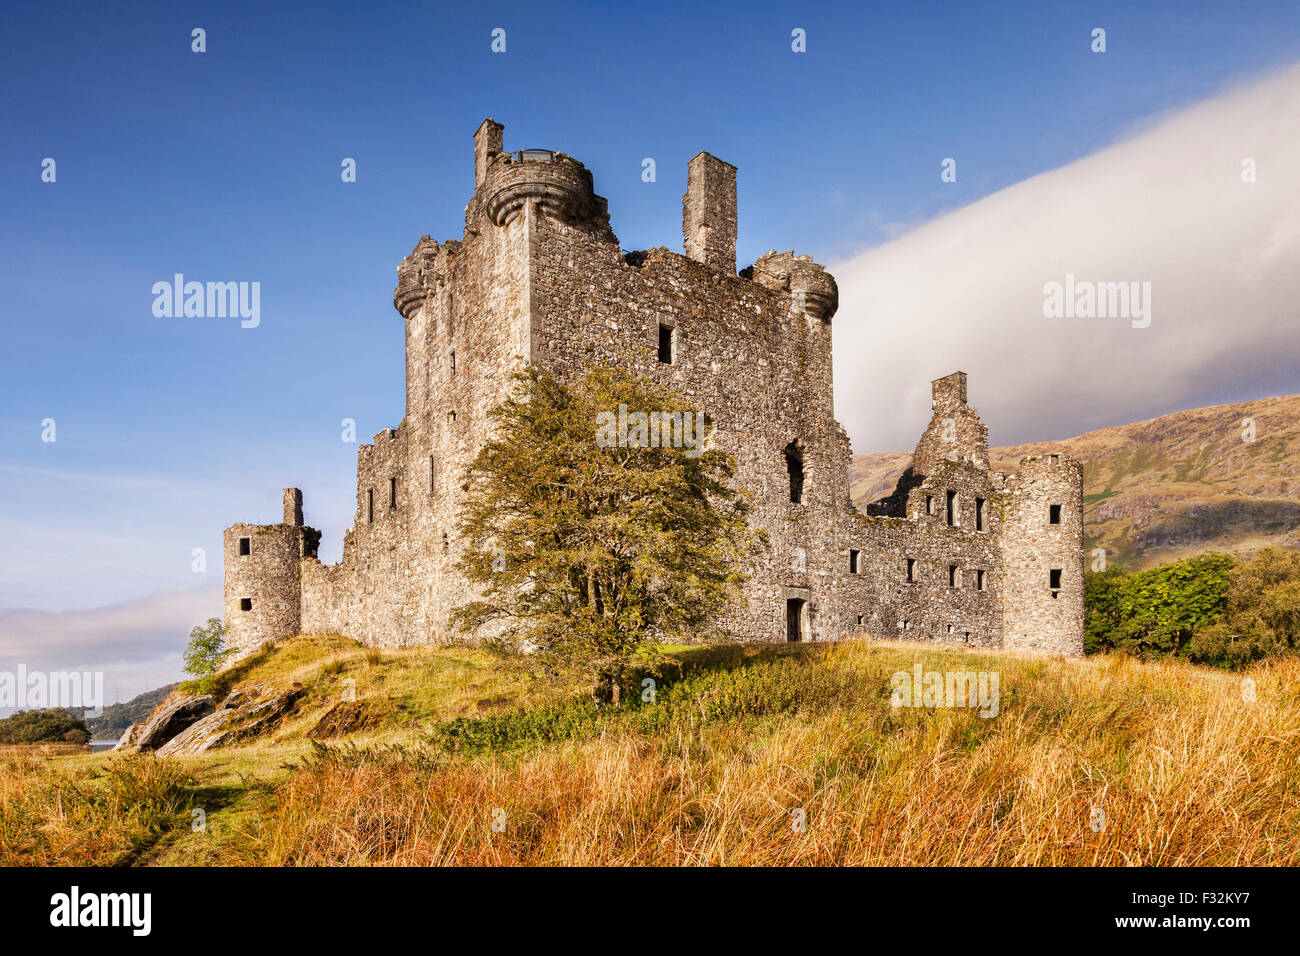 Le Château de Kilchurn, Loch Awe, Argyll and Bute, Ecosse, Royaume-Uni. Photo Stock